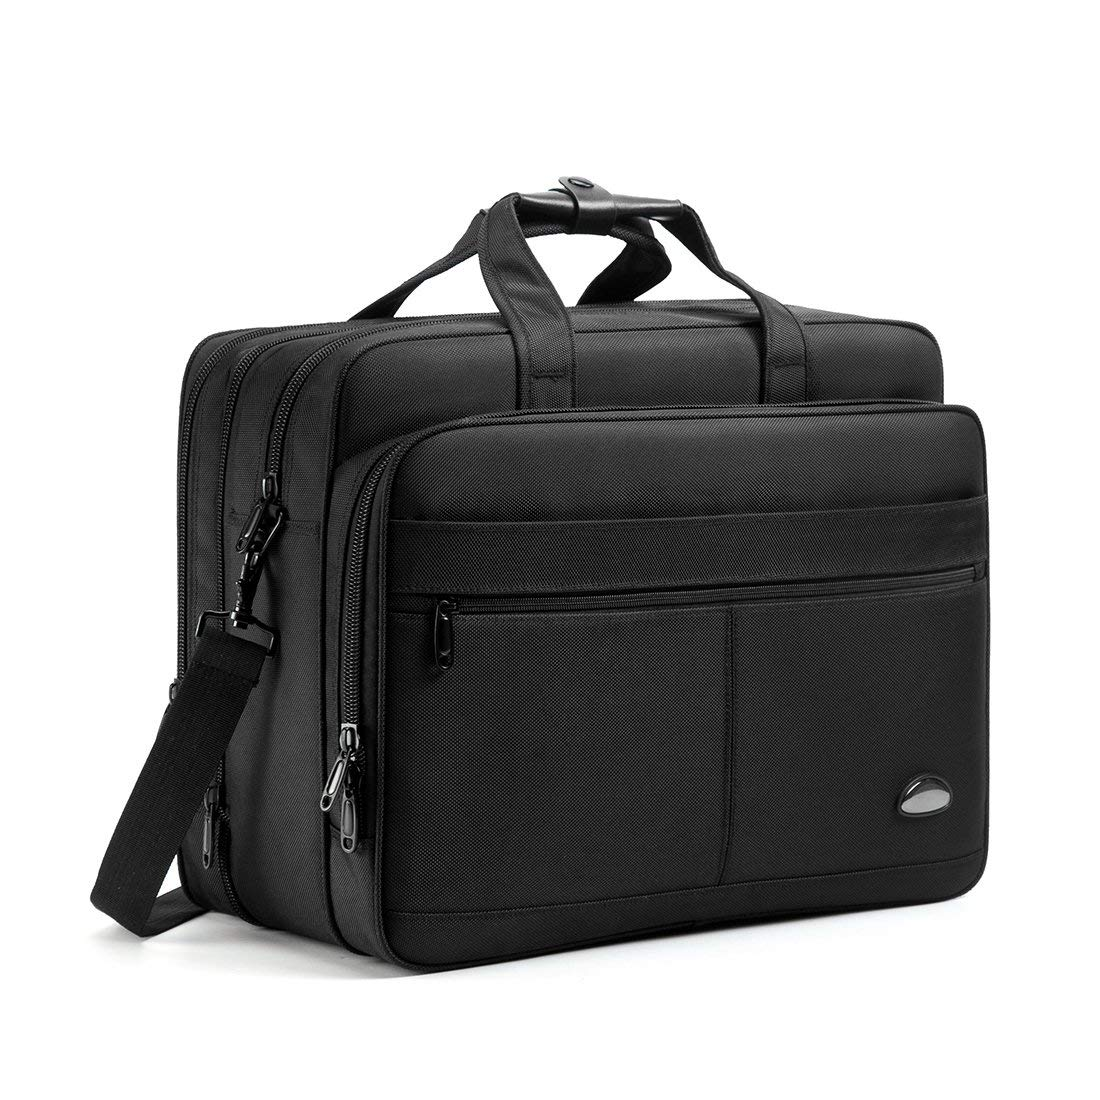 18-18.5 inch Laptop Bag,Water Resisatant Business Laptop Briefcase,Expandable High Capacity Shoulder Bag,Nylon Multi-Functional Shoulder Messenger Bag for Men Fits 17.3 inch Loptop,Computer,Tablet